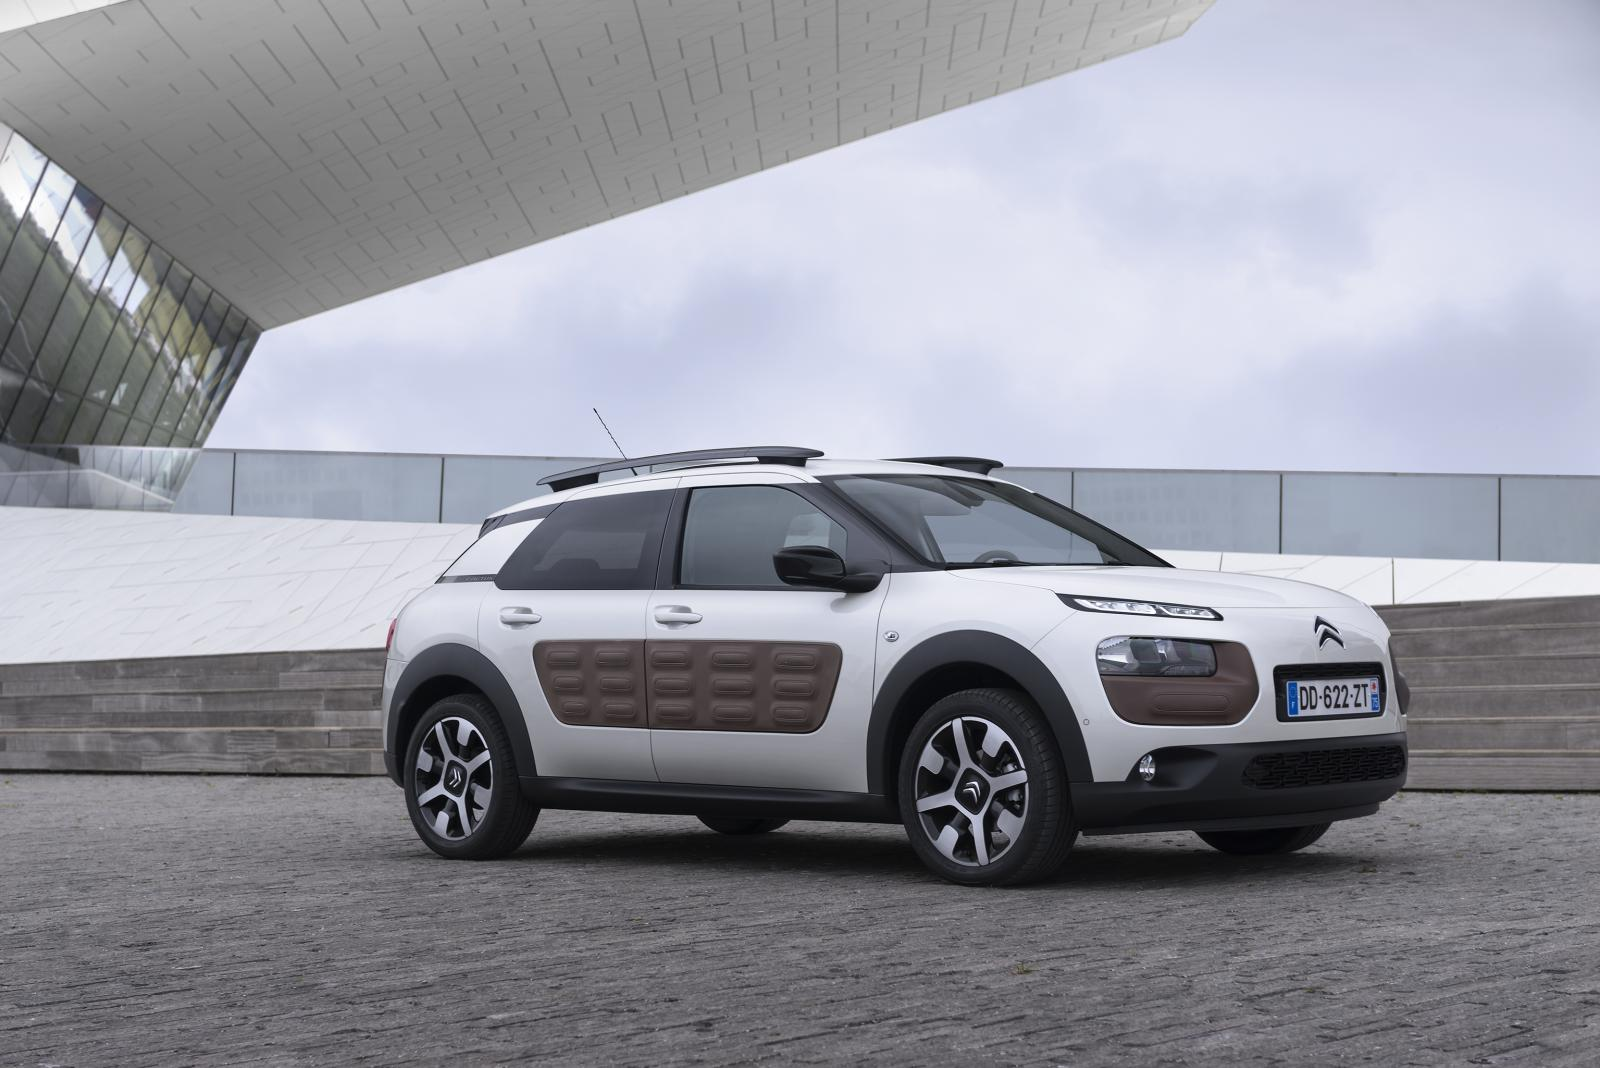 C4 Cactus Shine Edition 2014 Amsterdam ¾ forfra